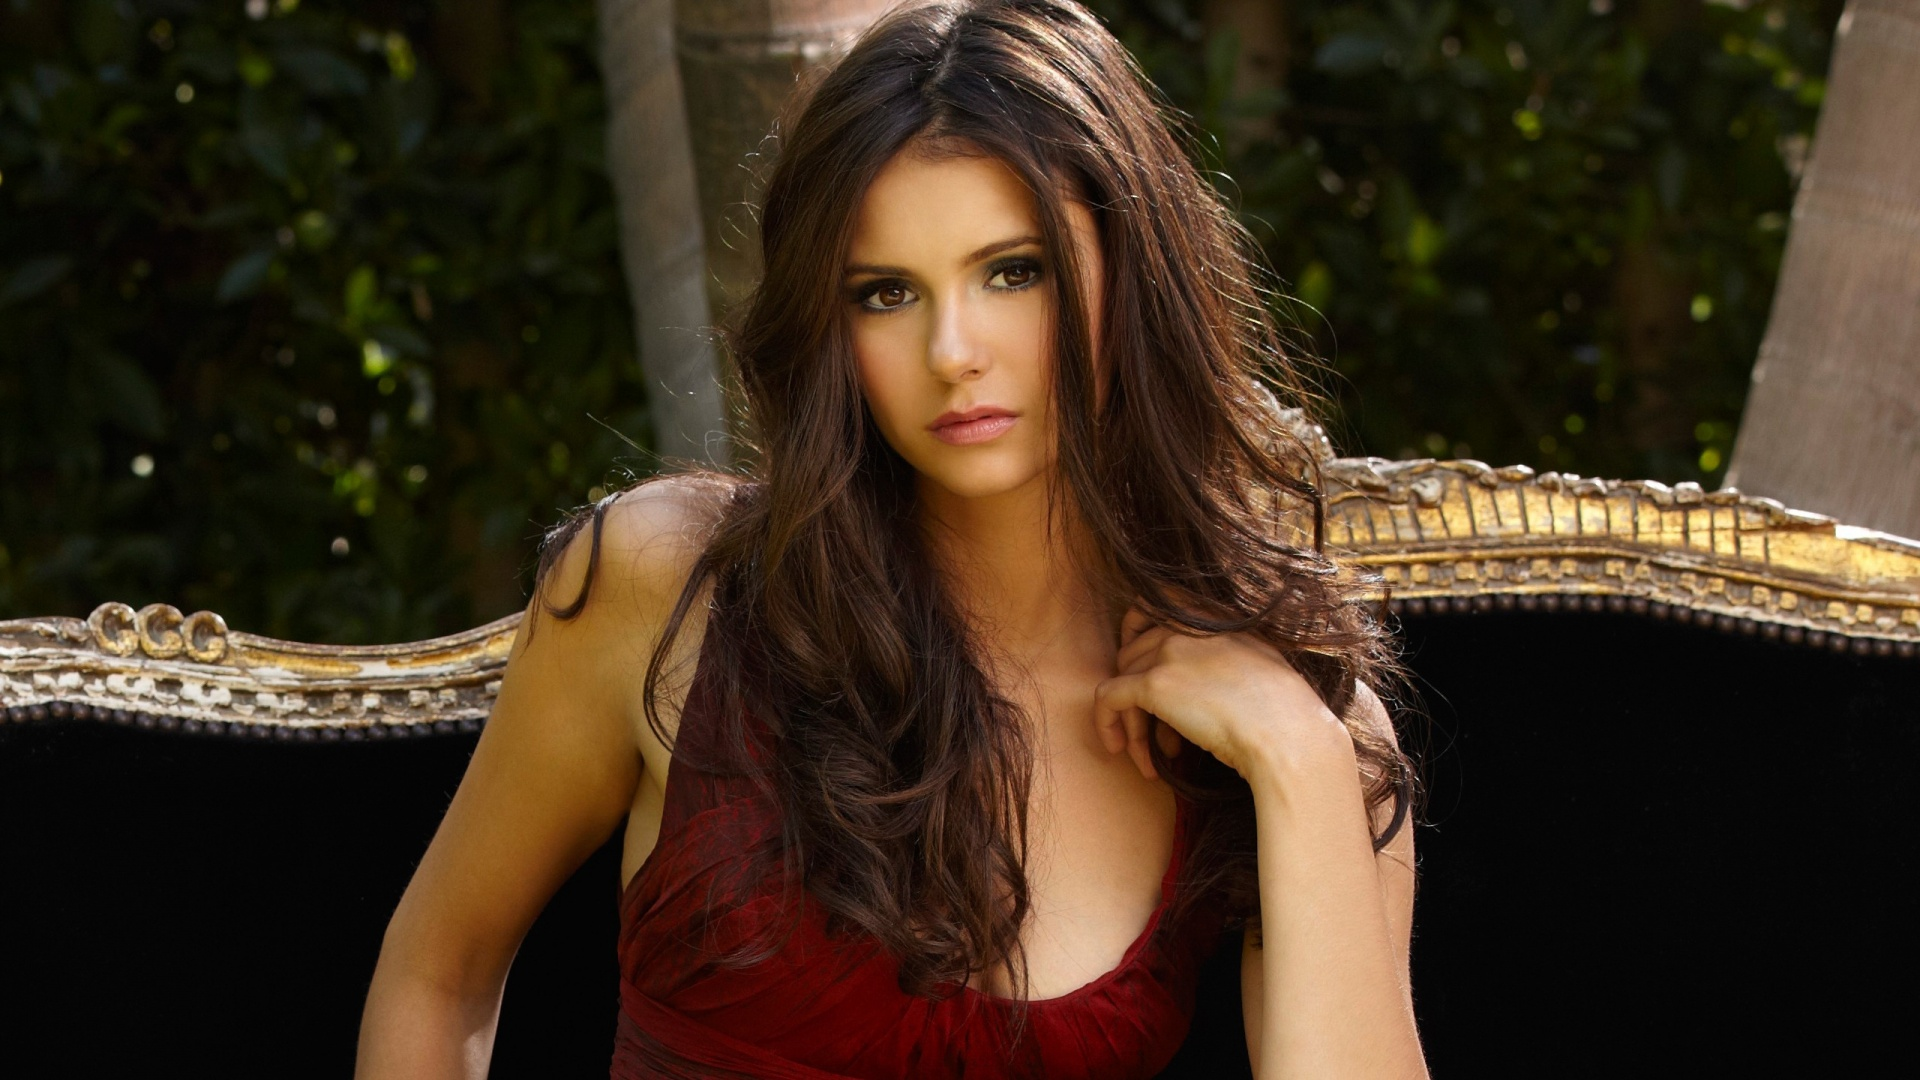 nina dobrev wallpapers hd A1